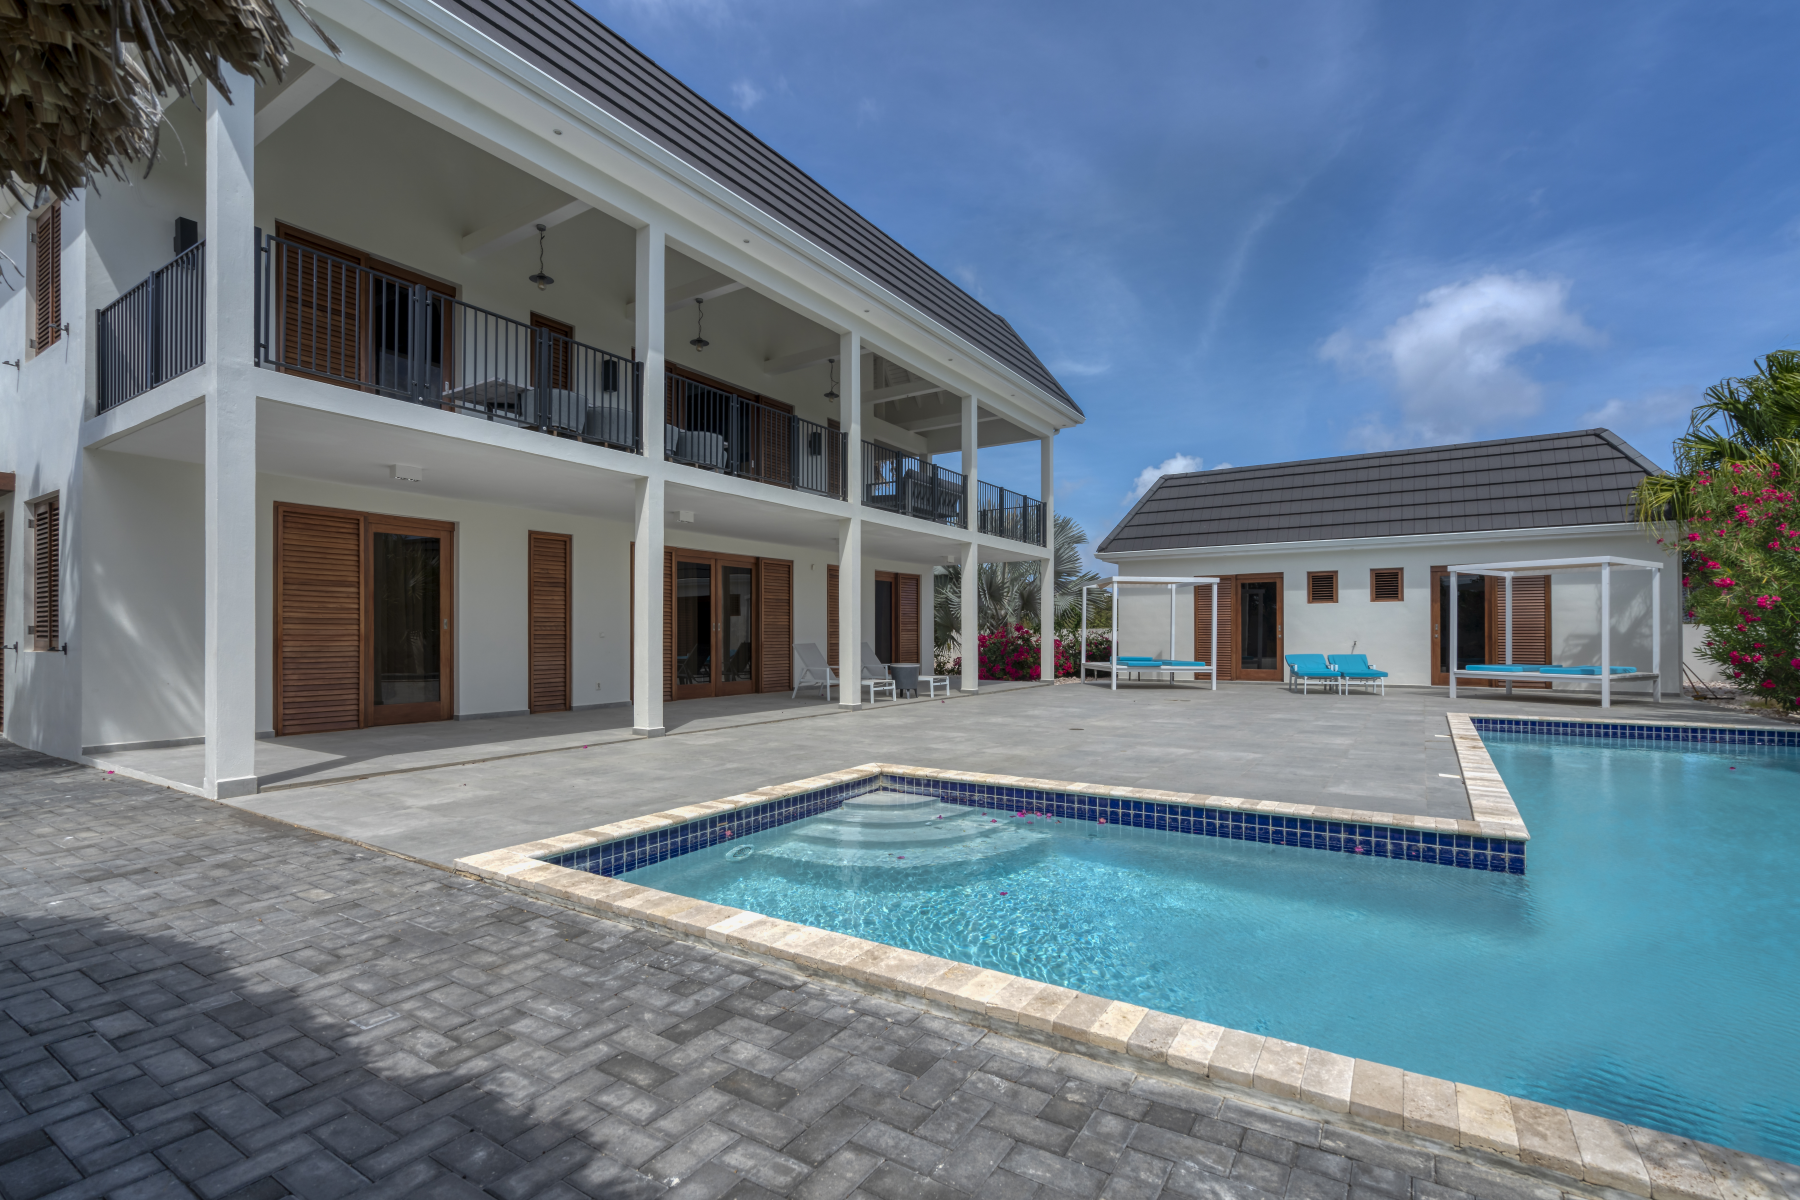 Multi-Family Homes for Sale at Vista Royal Twin Villas N1 & N2 Willemstad, Curacao